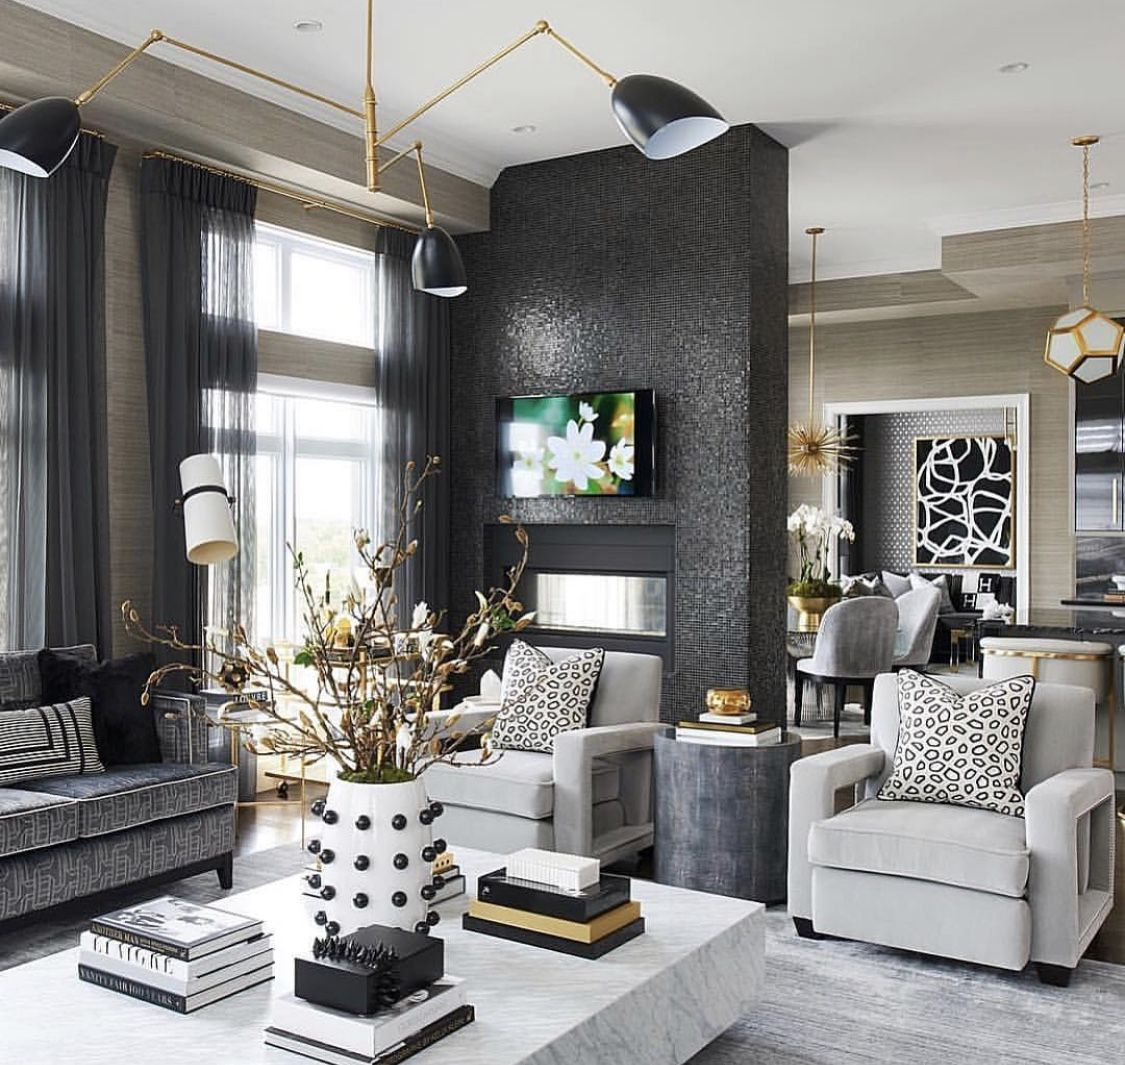 14 home accessories Grey interior design ideas